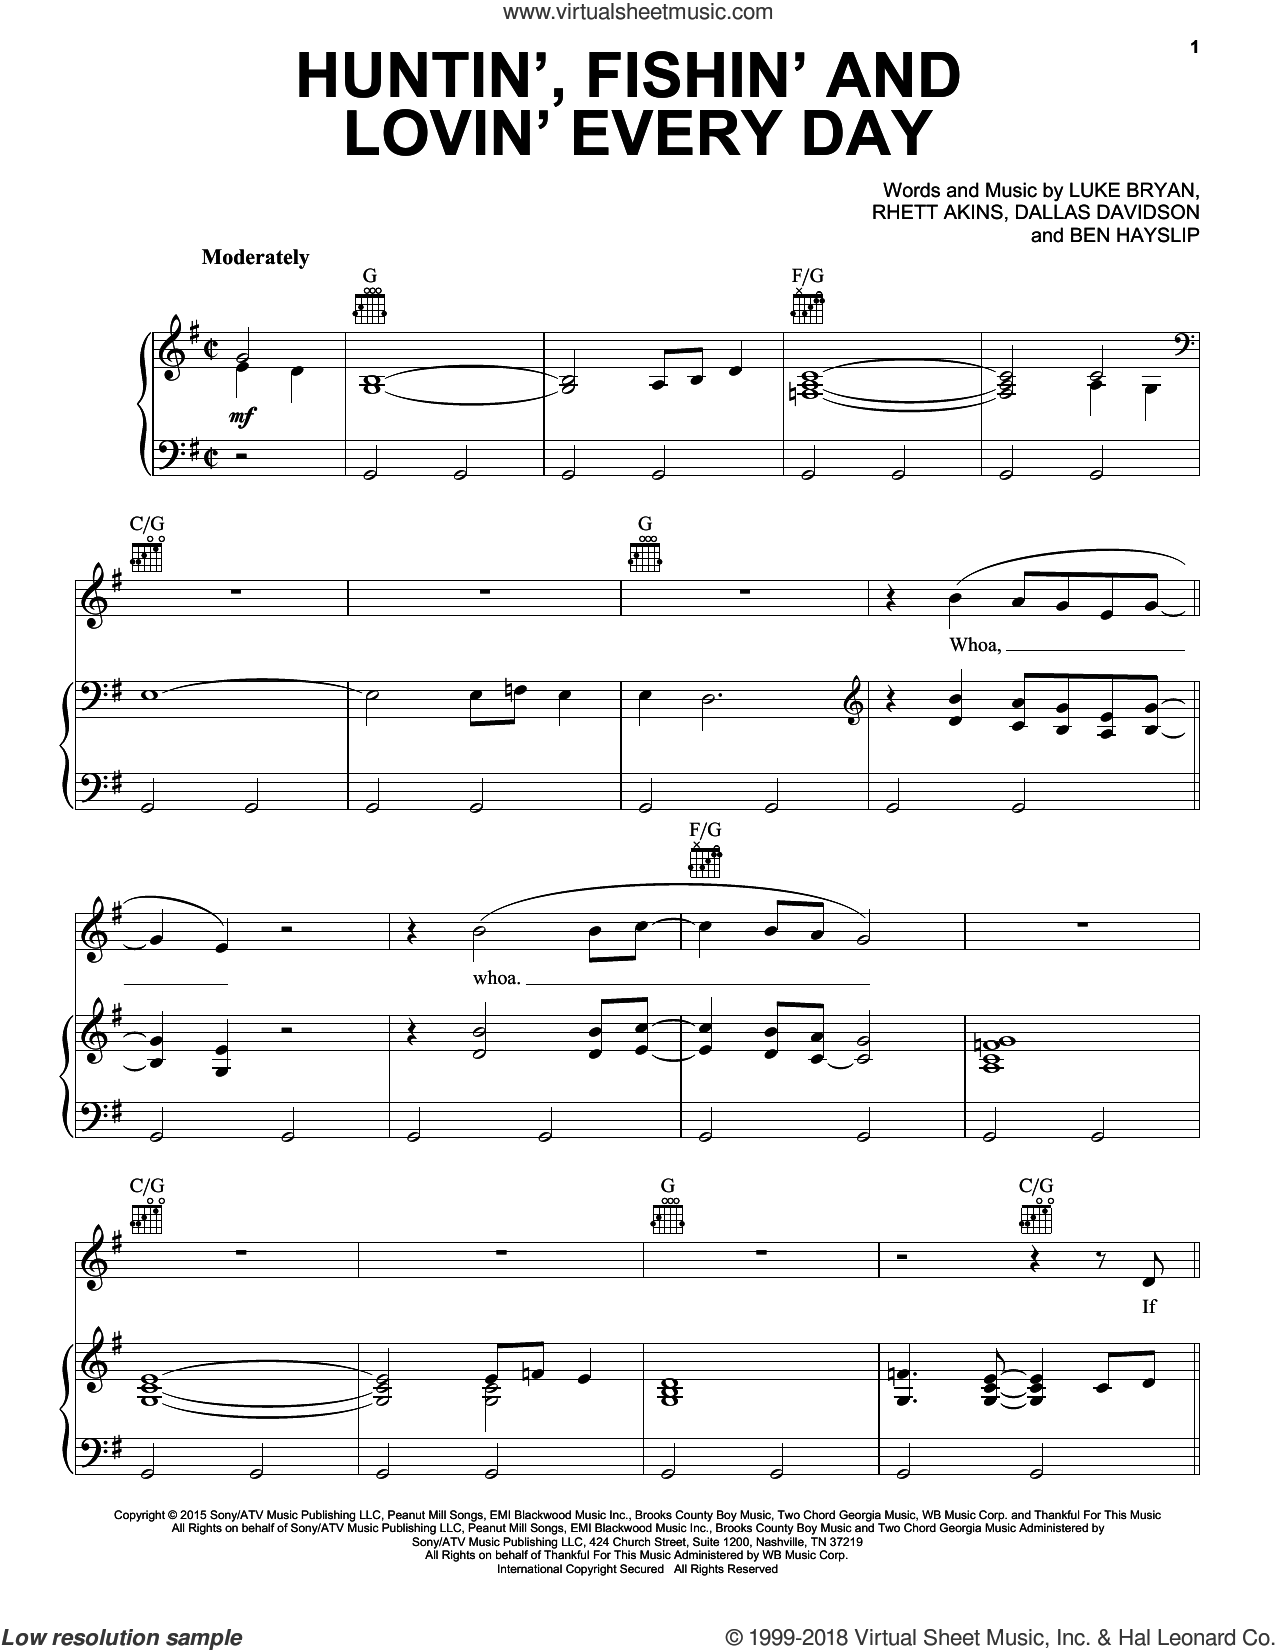 Huntin', Fishin' And Lovin' Every Day sheet music for voice, piano or guitar by Rhett Akins, Ben Hayslip, Dallas Davidson and Luke Bryan. Score Image Preview.